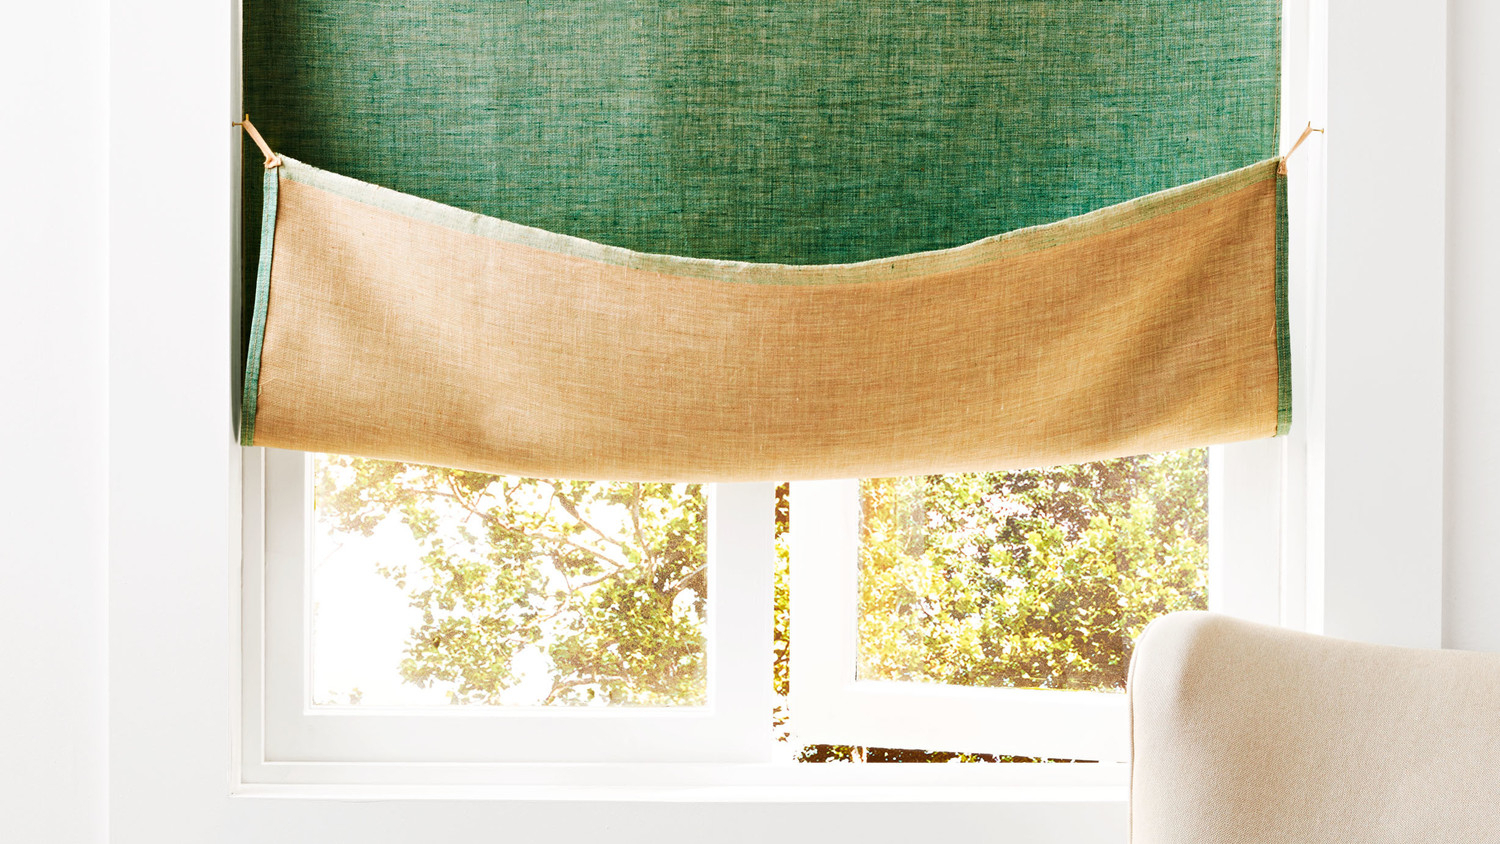 Hot Sale: Archaeo Slub Textured Linen Blend Grommet Top Curtain Intended For Archaeo Slub Textured Linen Blend Grommet Top Curtains (Image 17 of 20)